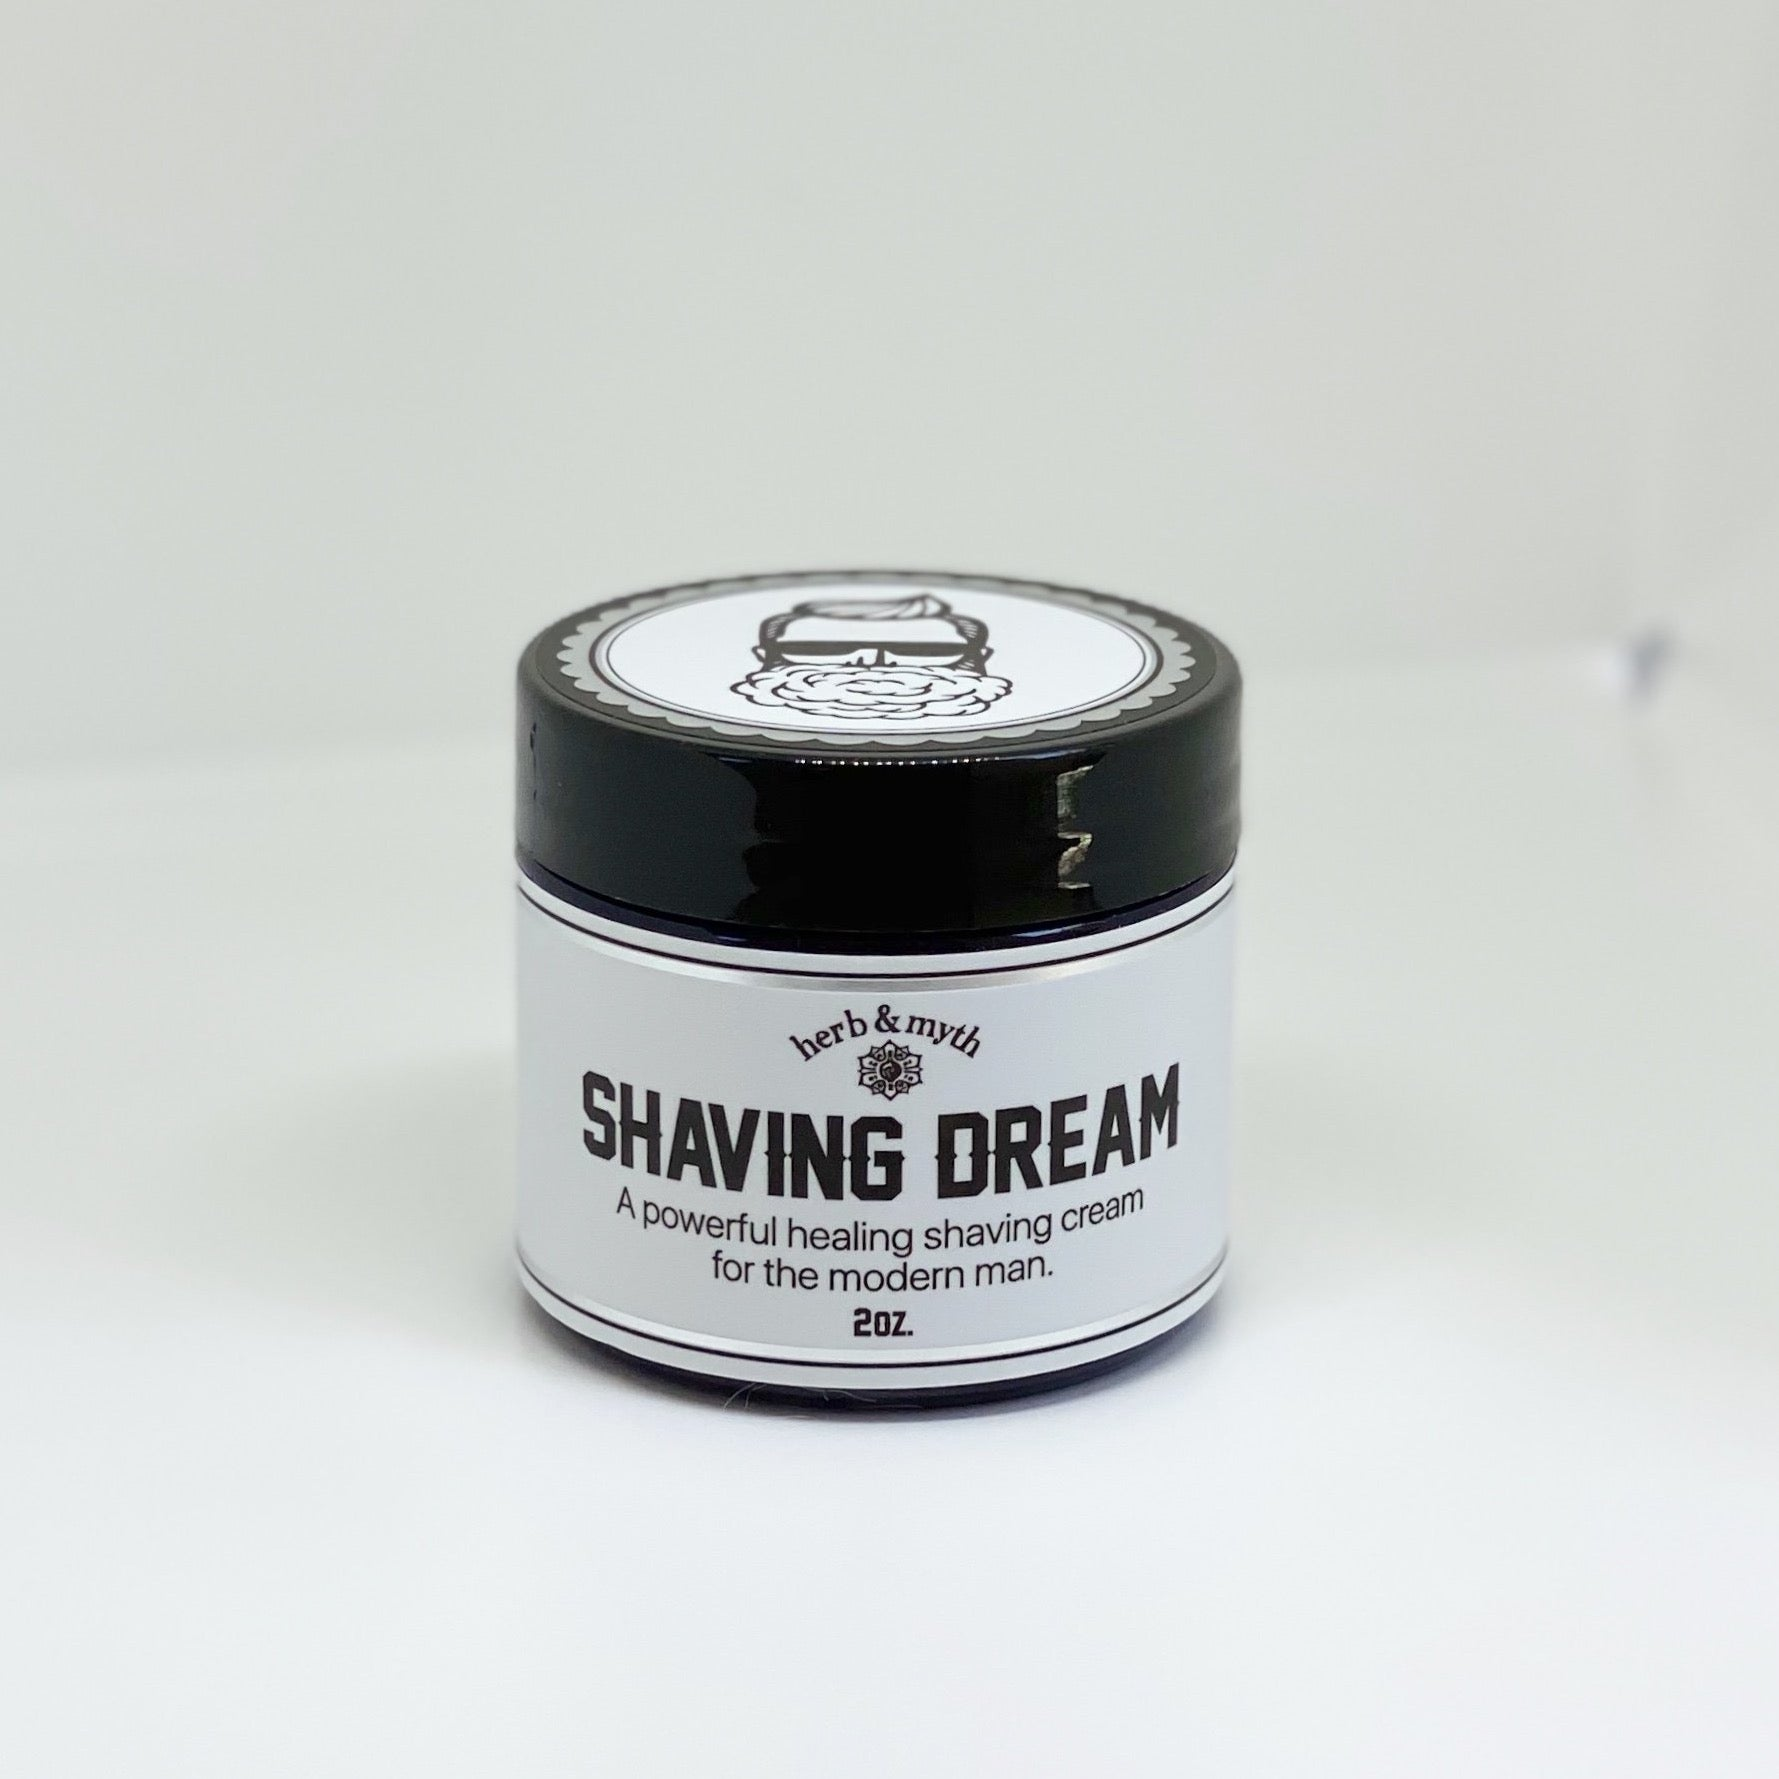 Shaving DREAM